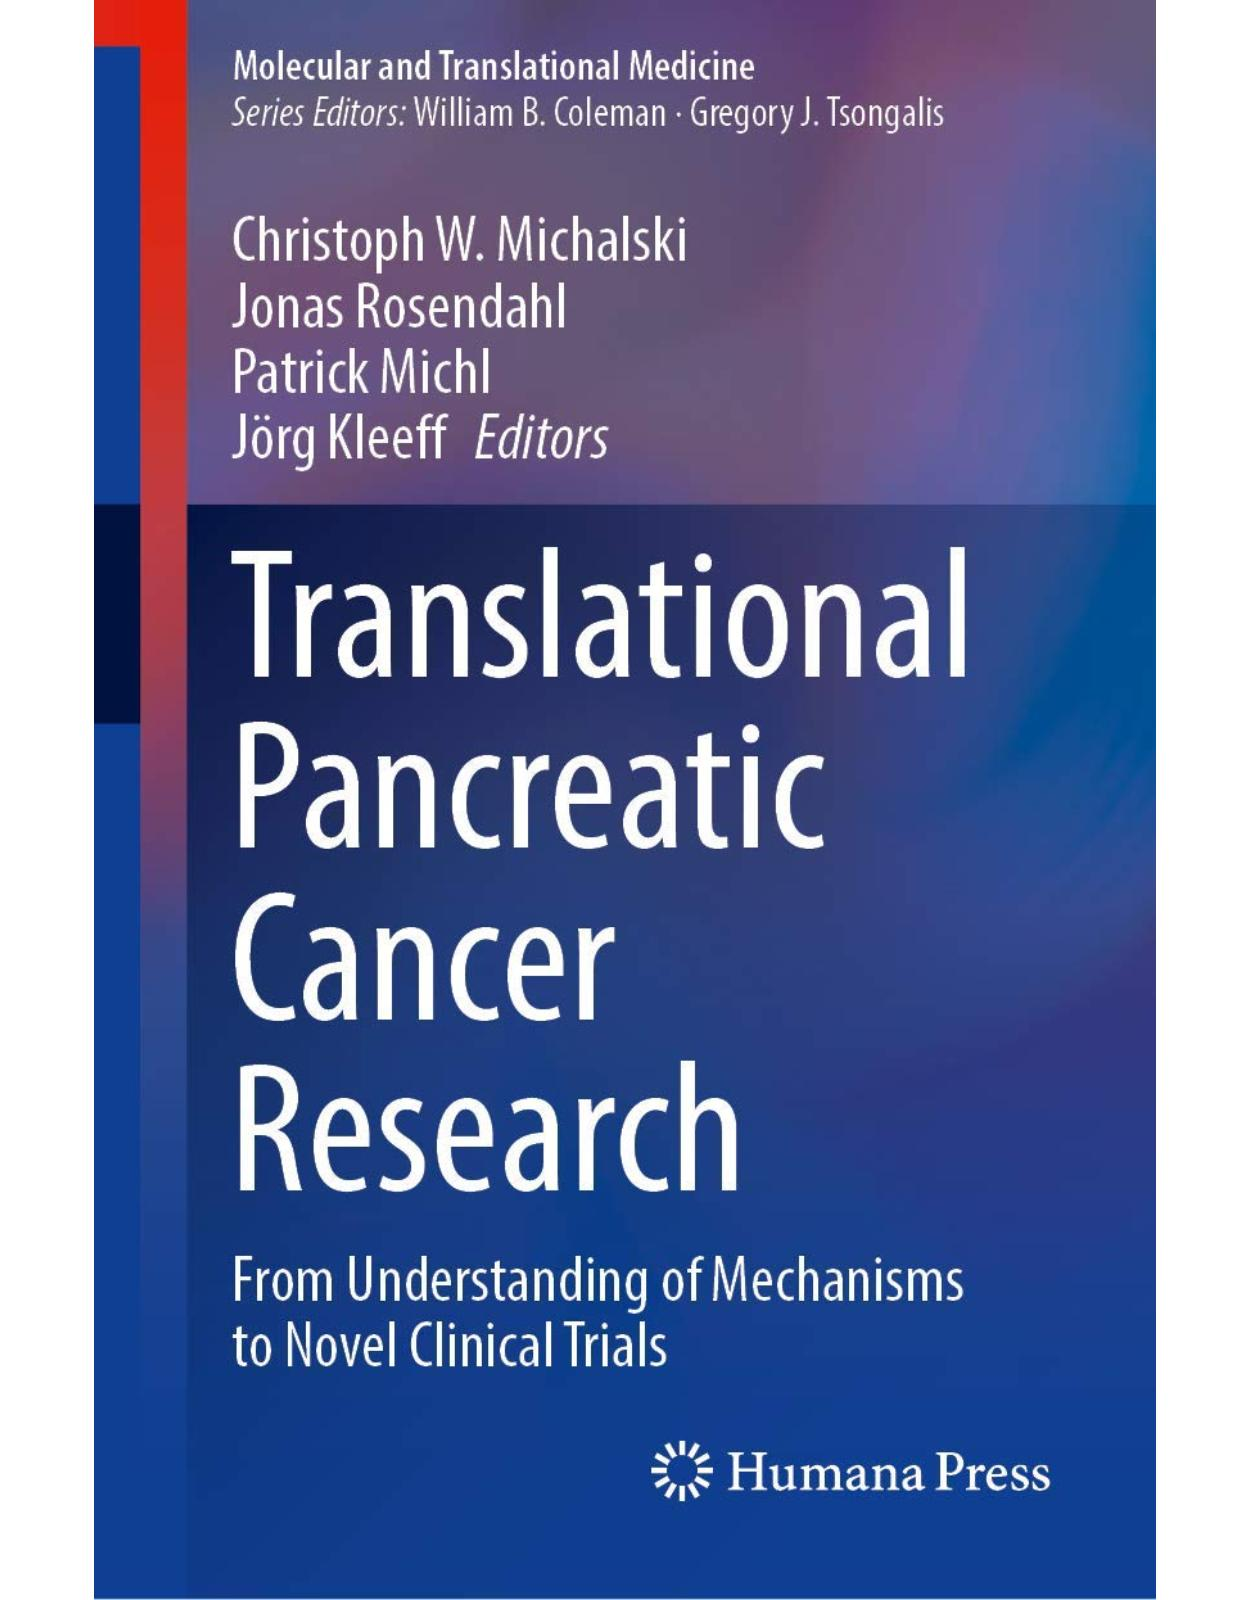 Translational Pancreatic Cancer Research From Understanding of Mechanisms to Novel Clinical Trials